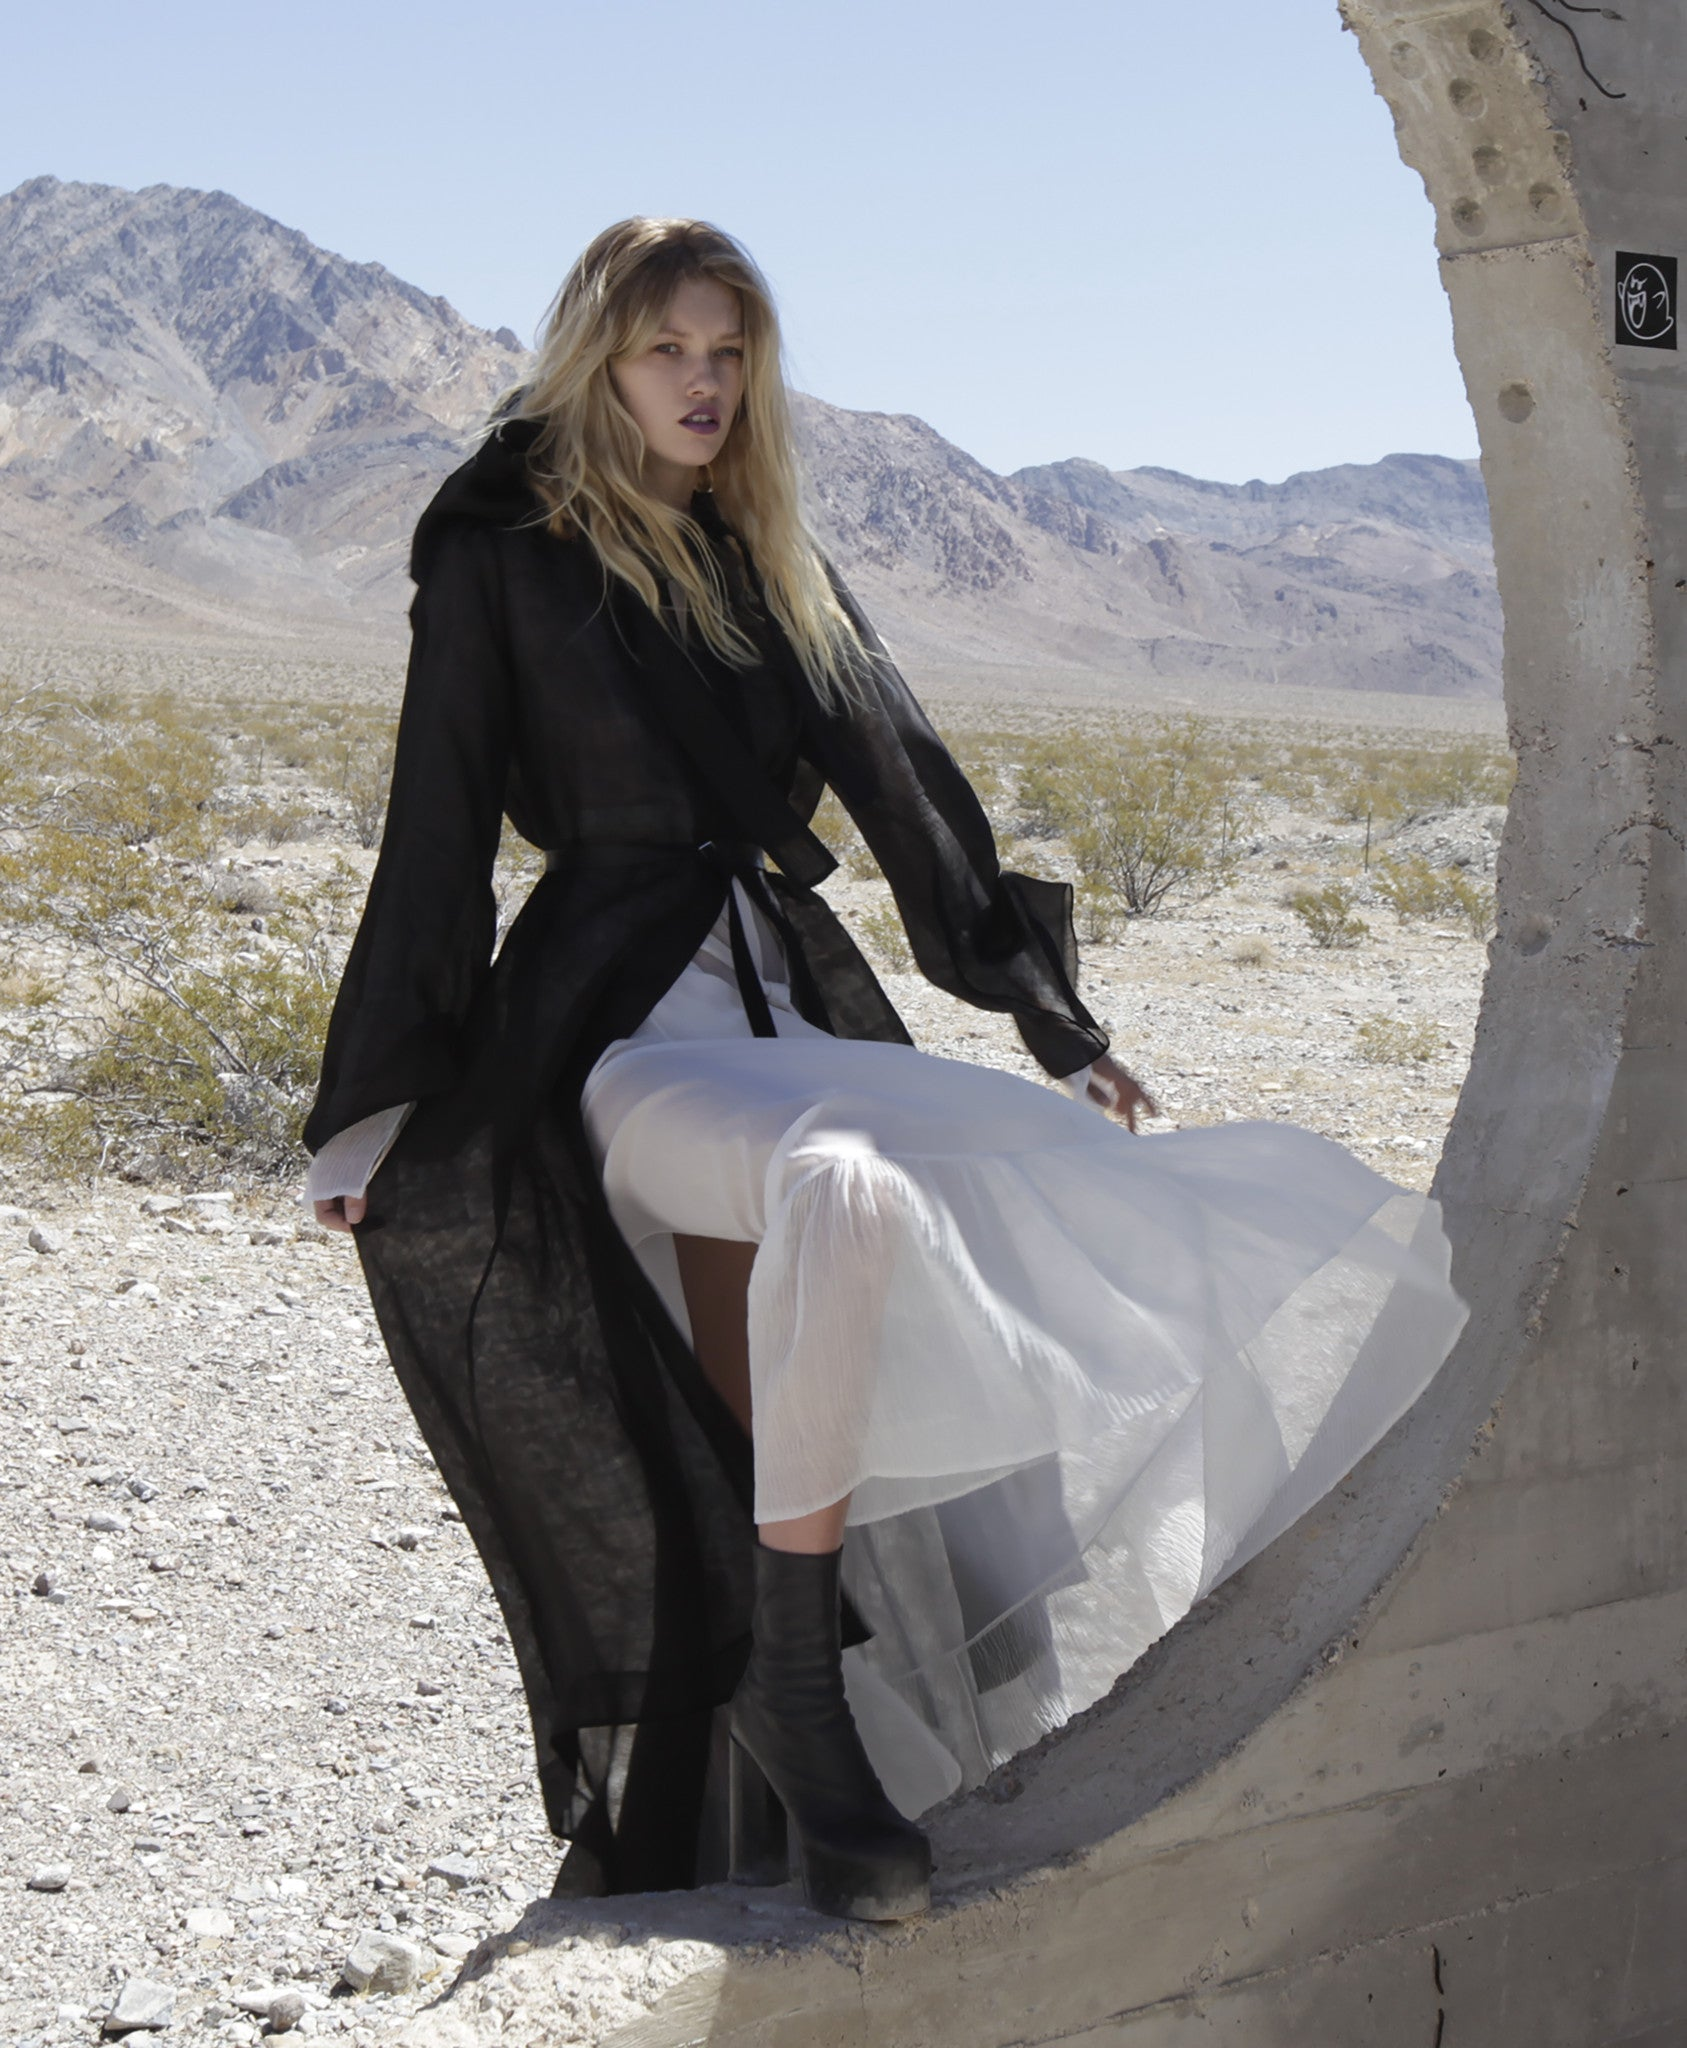 Maggie Laine IMG model Wendy Nichol Clothing Designer SS17 Fashion Runway Show Death Valley Triangle Pyramid shape leather bag Hood Devil Star Triangle Bag Sheer White Cross Apron Dress Bell Sleeves Silk Handmade in NYC